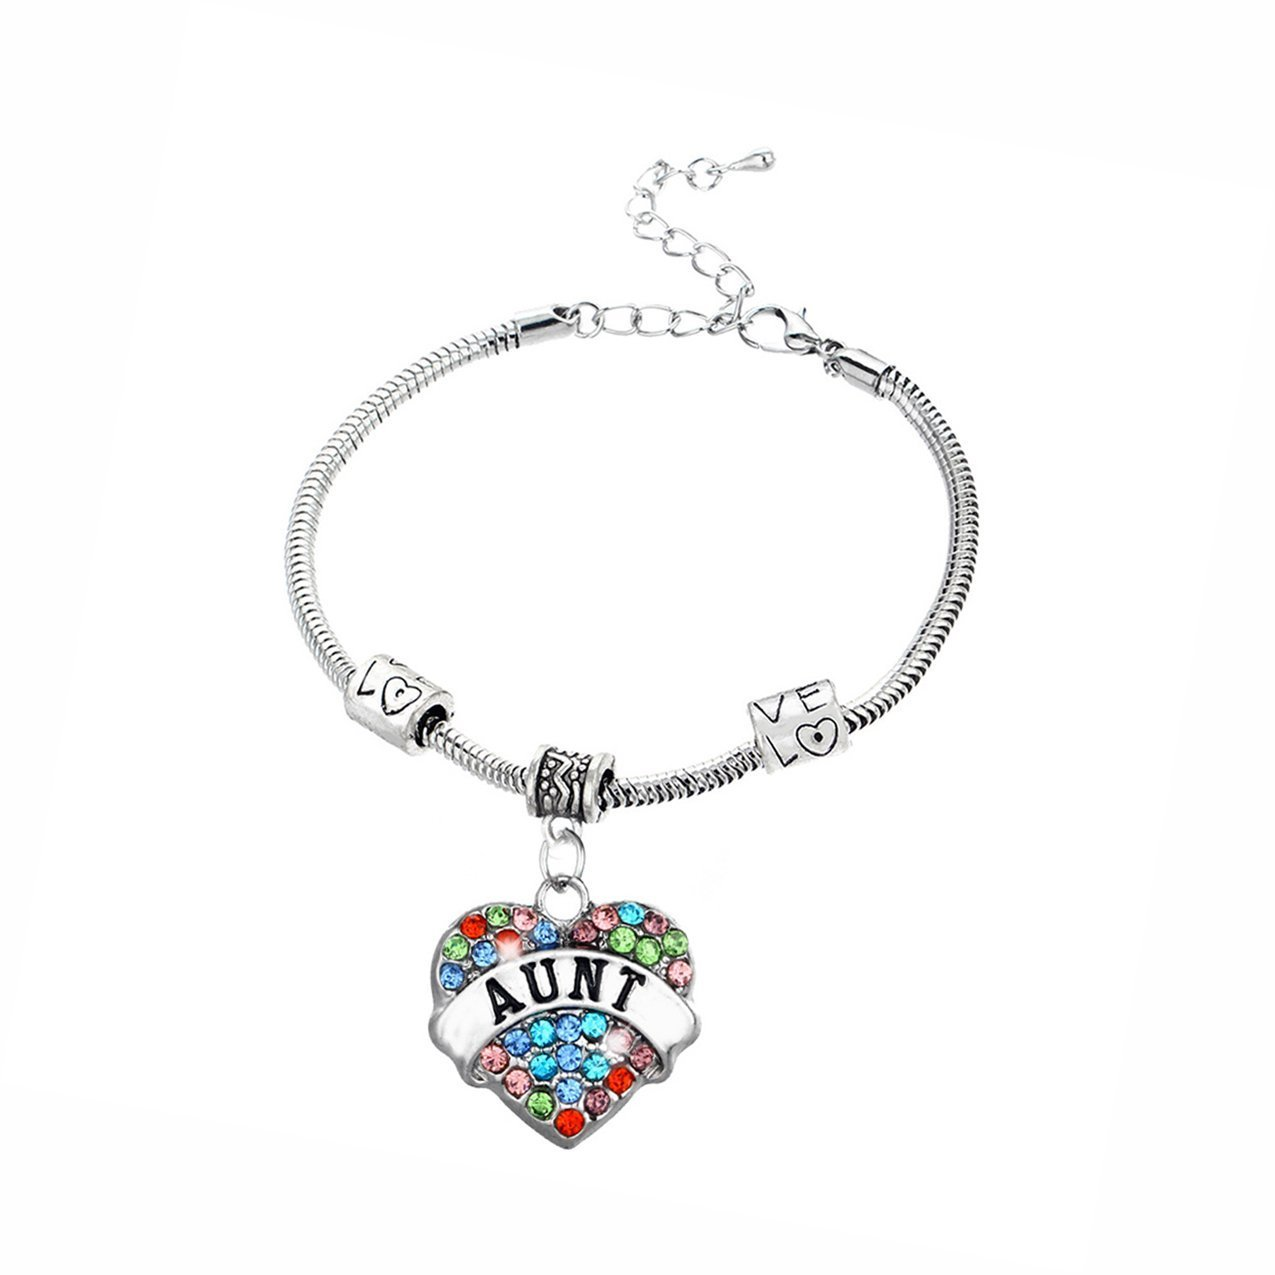 JiangYan-US Snake Chain Adorable Multi-Color Crystal Heart Charms Bracelets Best Family Jewelry Gift